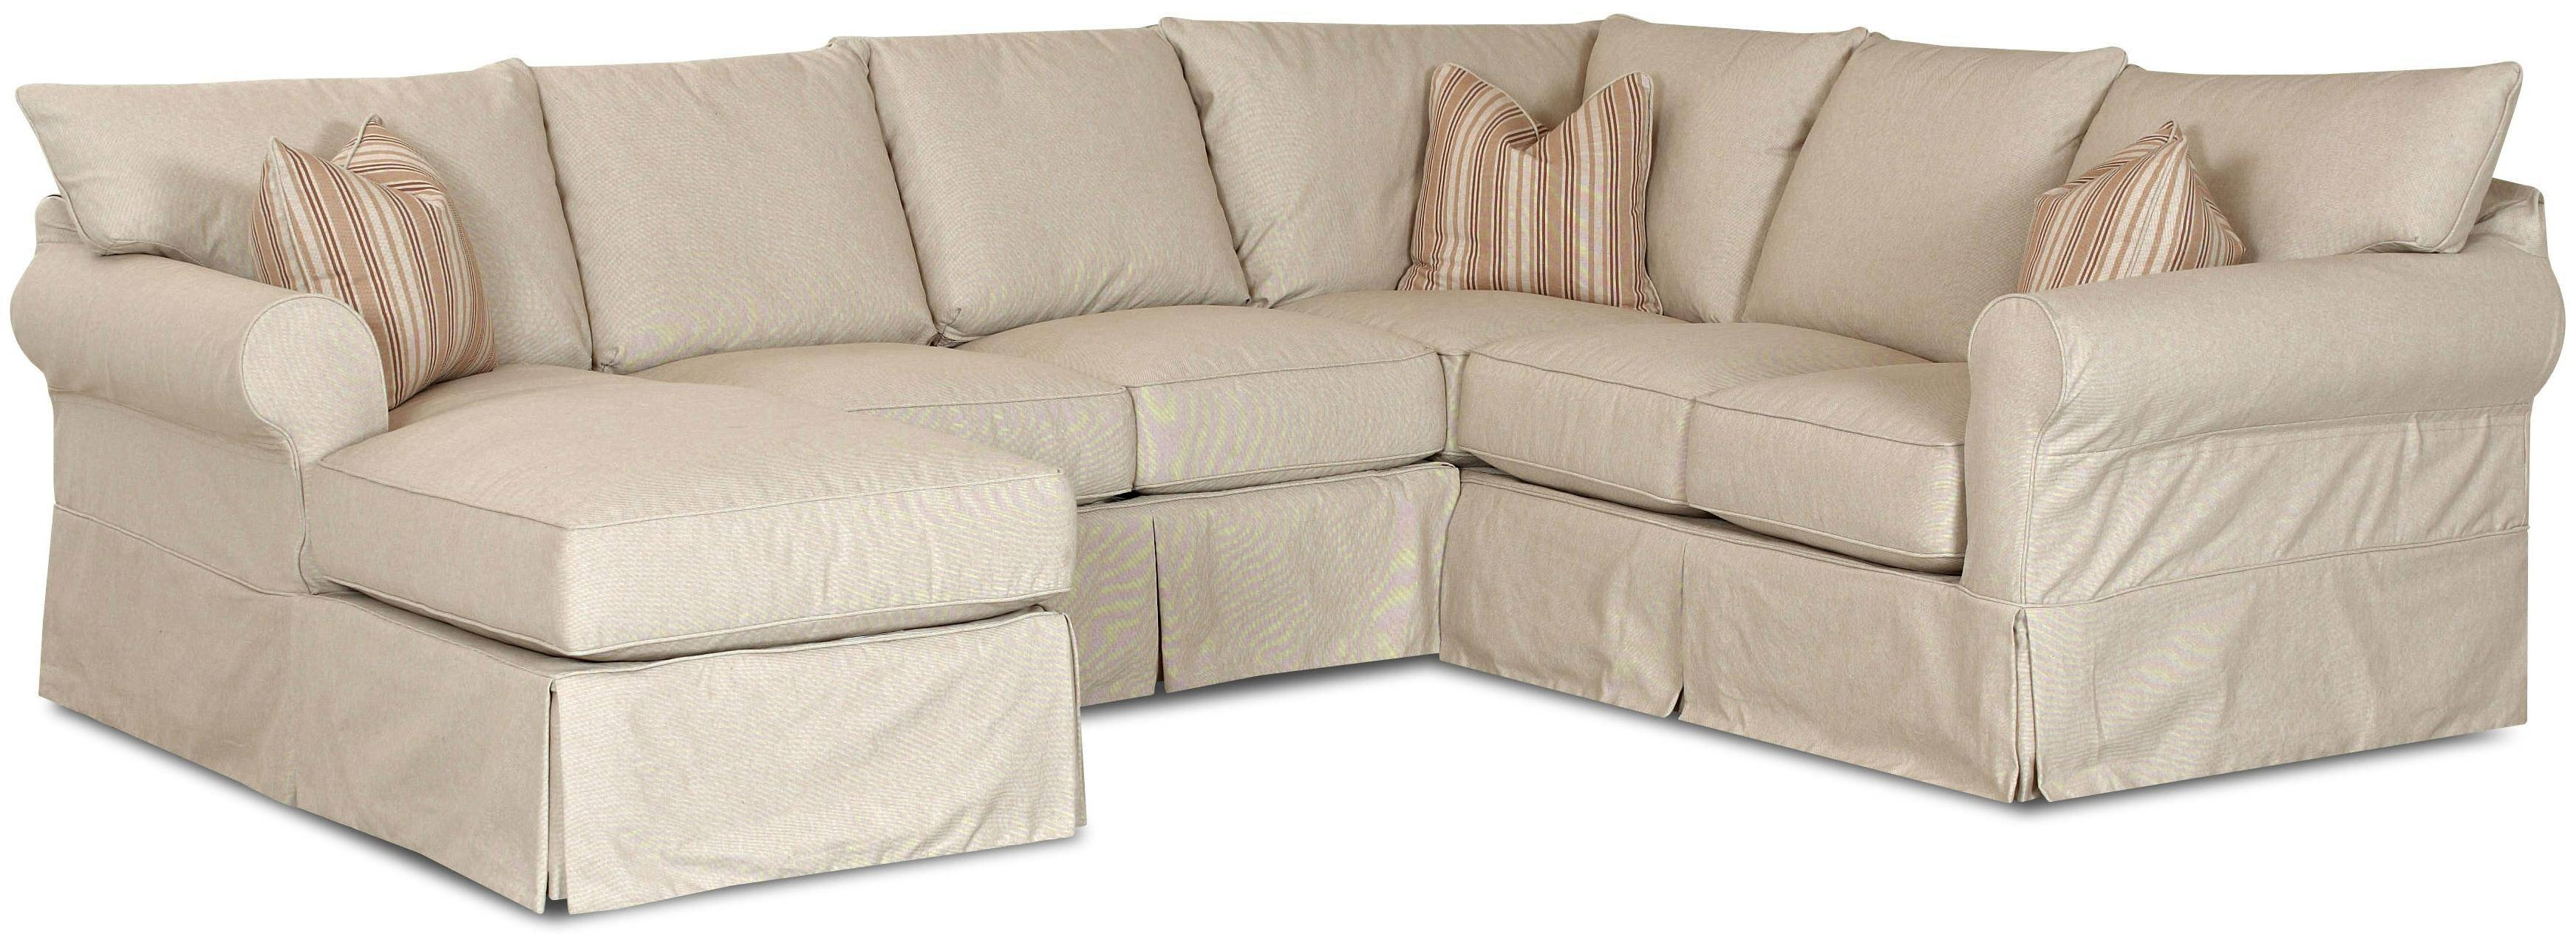 Slip Cover Sectional Sofa With Left Chaiseklaussner | Wolf And pertaining to Sofas Cover for Sectional Sofas (Image 11 of 15)